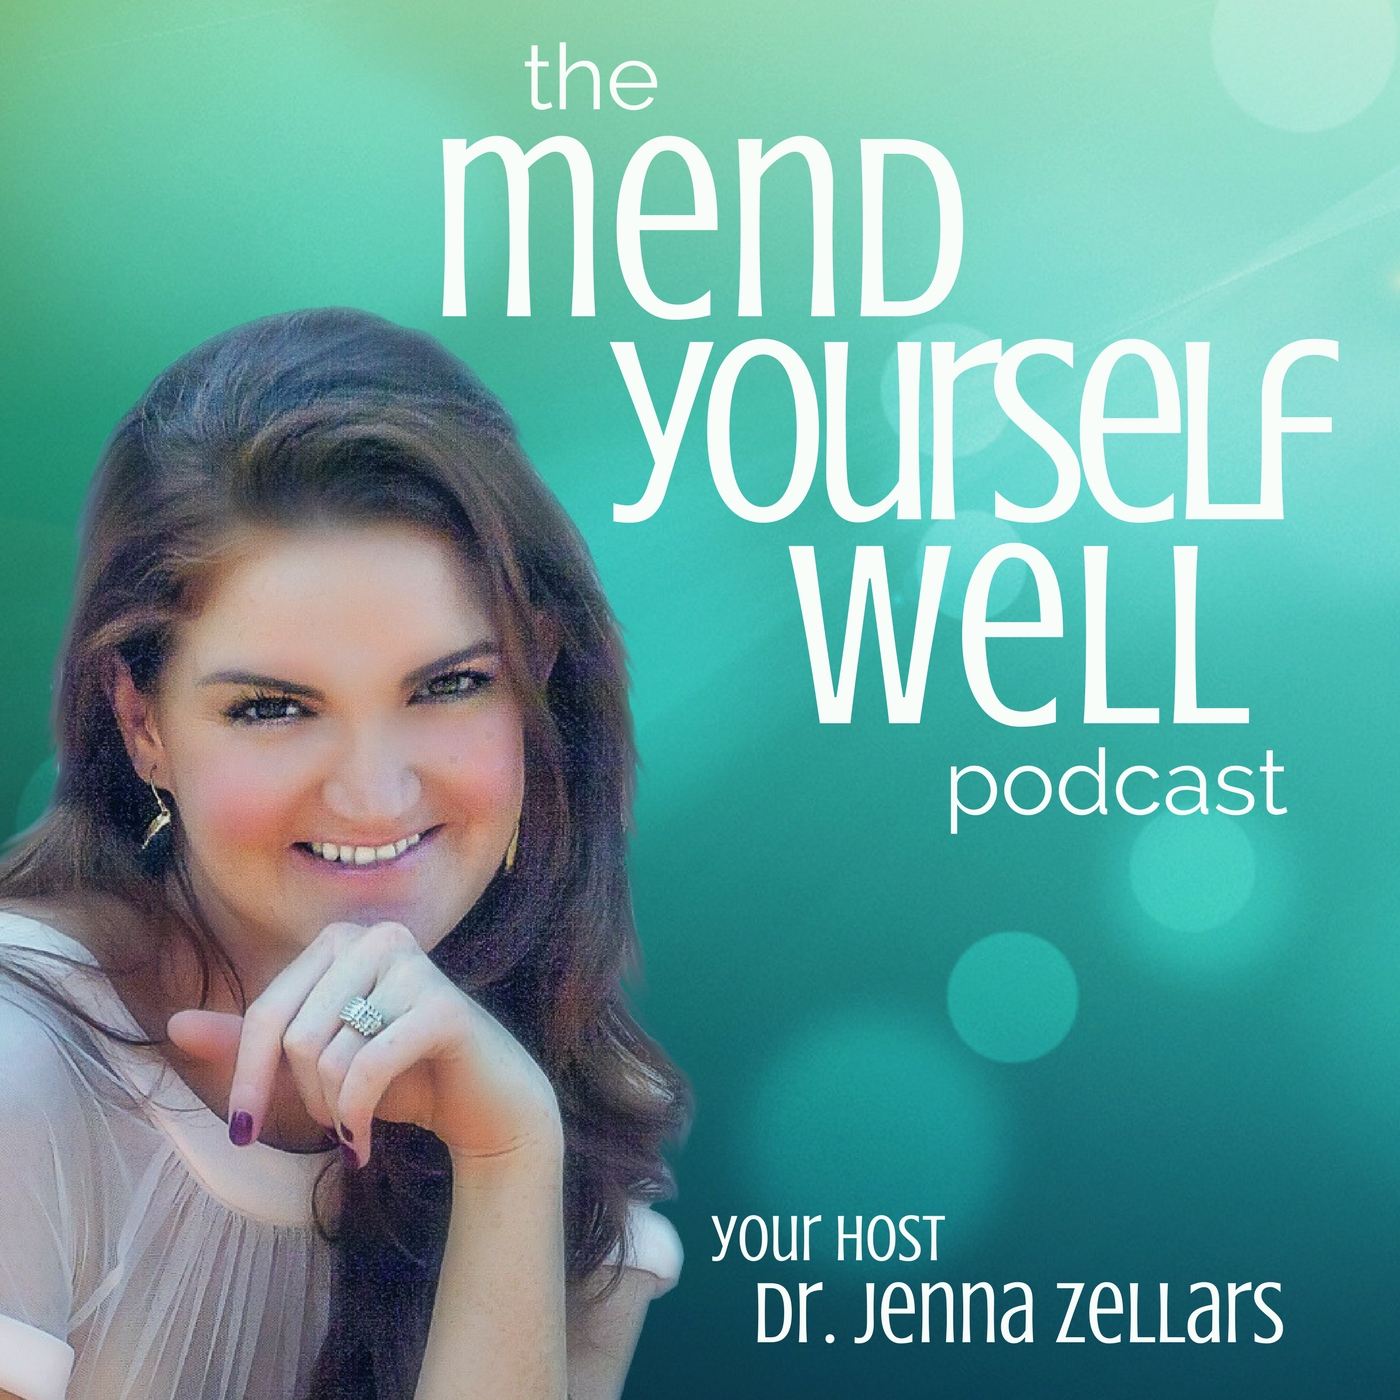 The Mend Yourself Well Podcast: Self-Care Practices for the Body | Mind | Soul show art